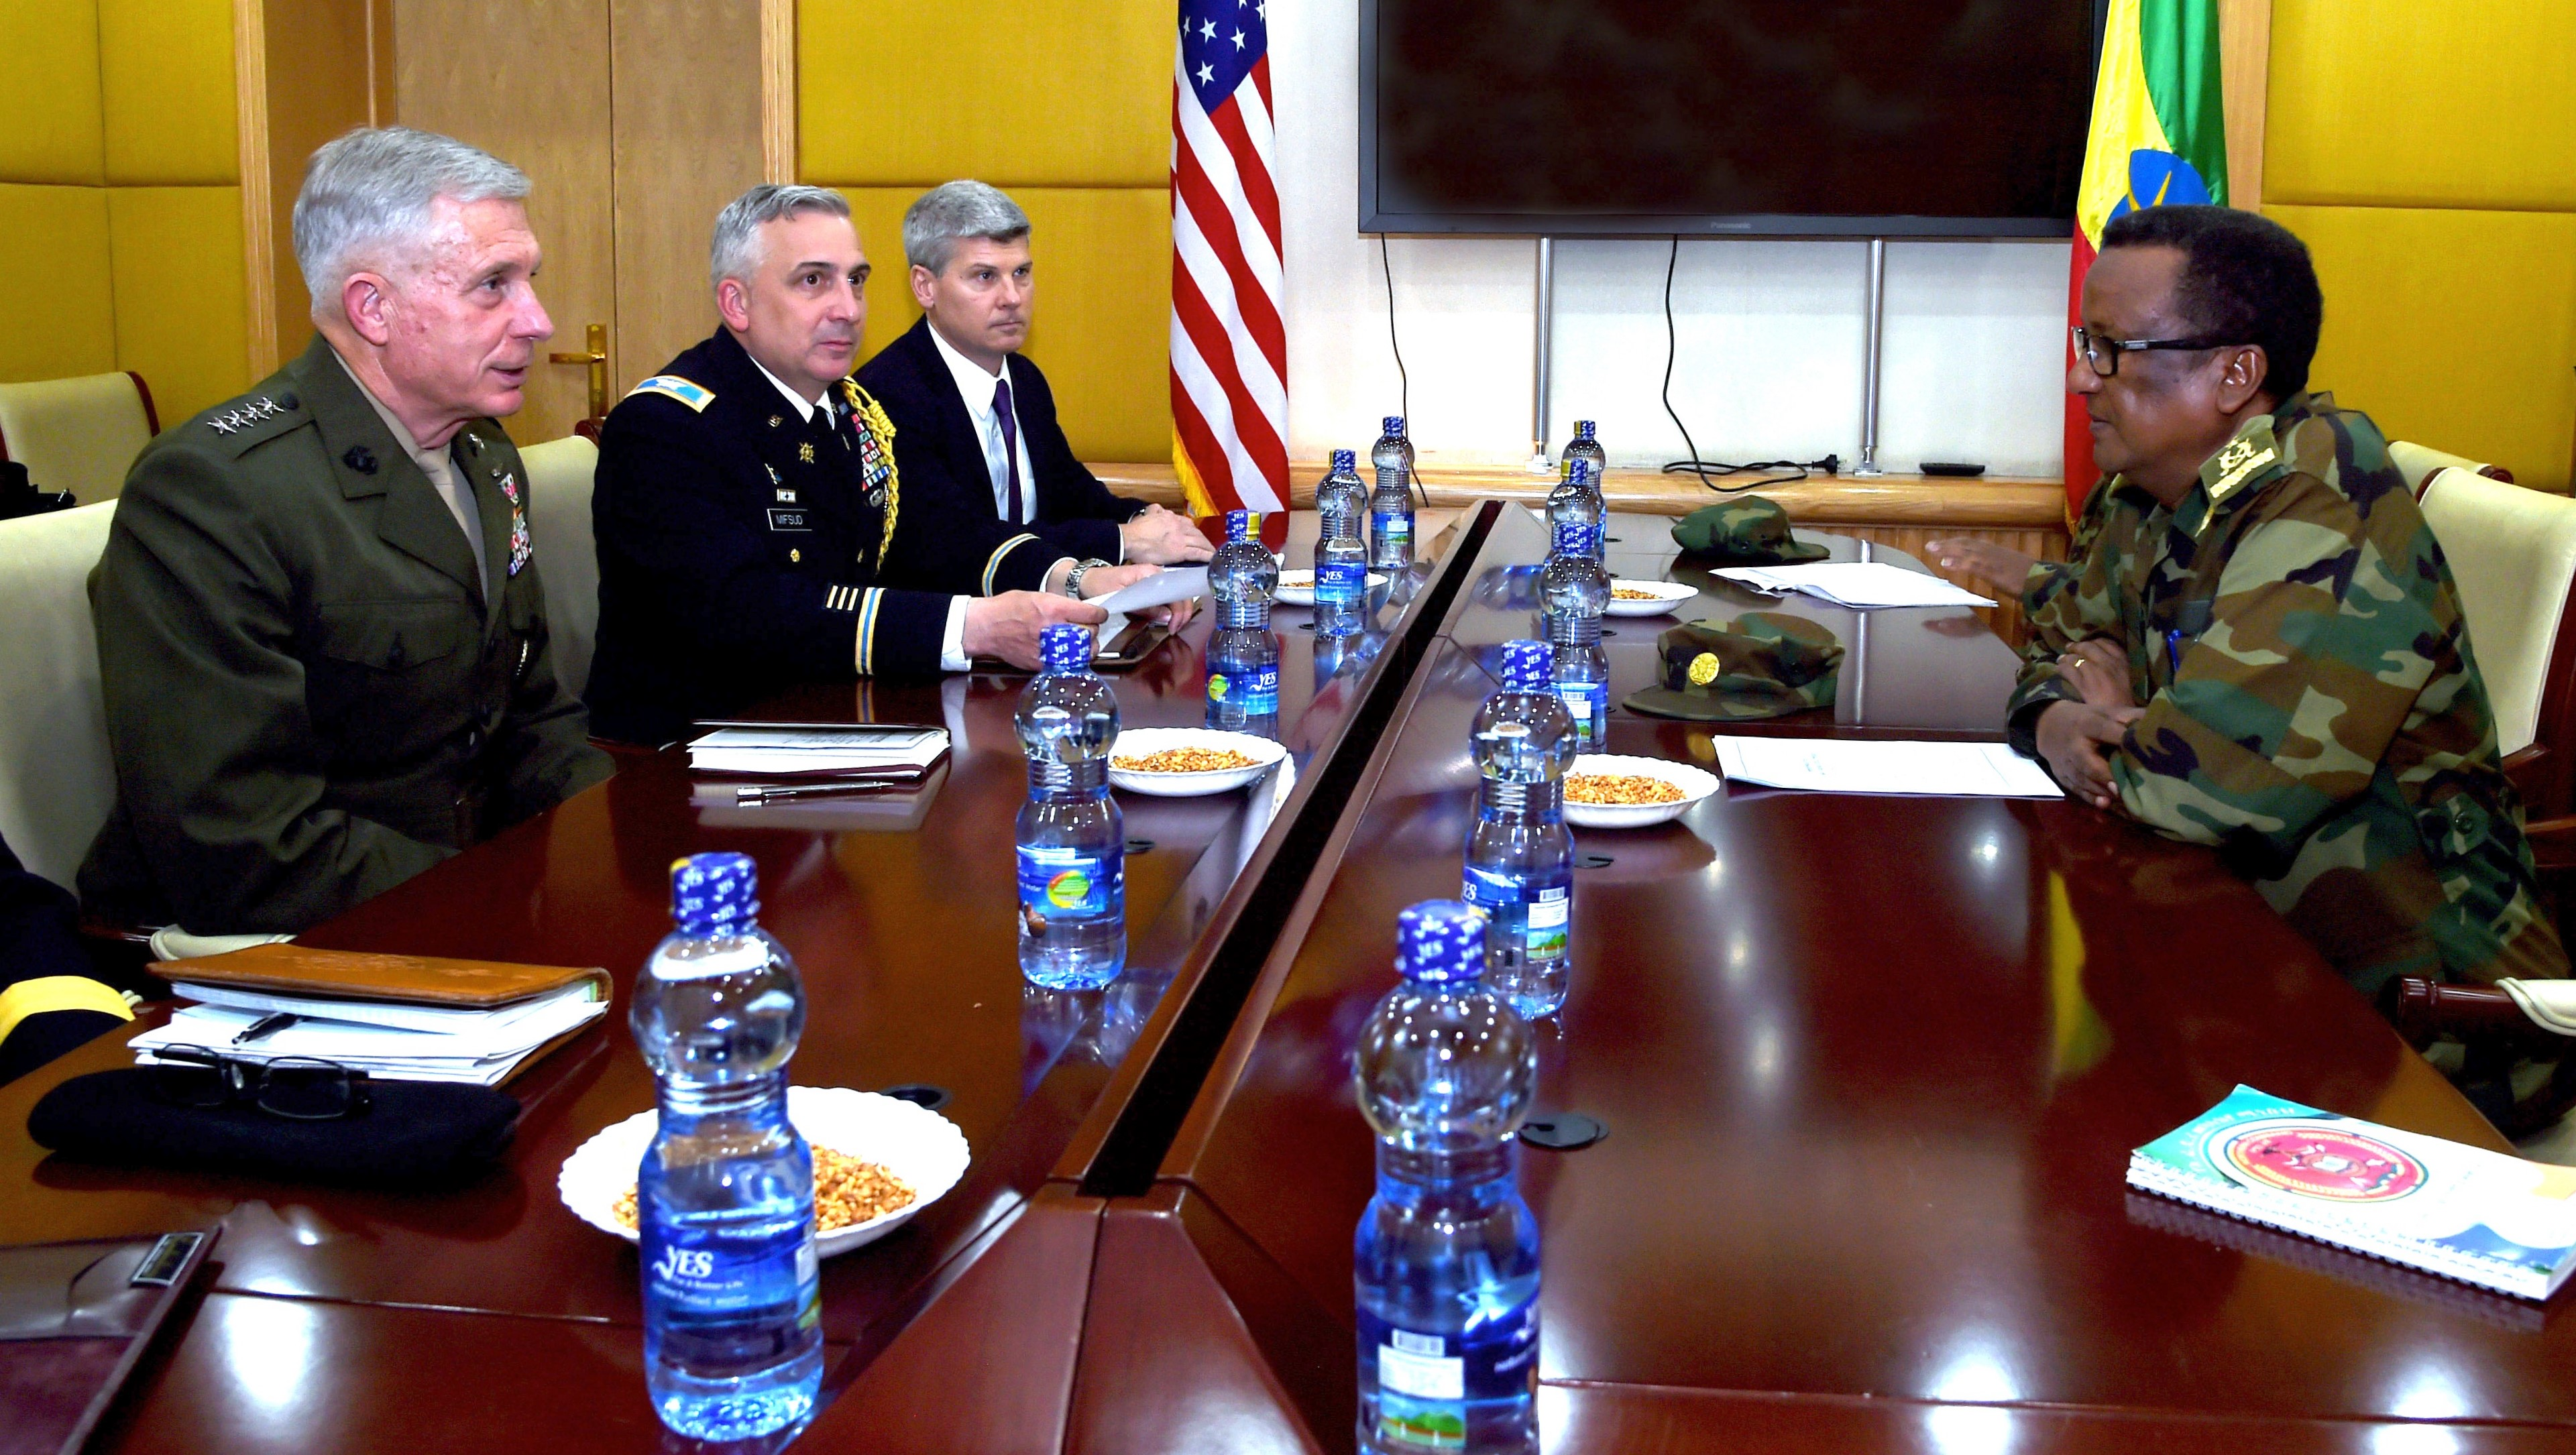 ADDIS ABABA, Ethiopia – U.S. Marine Gen. Thomas D. Waldhauser, Commander, U.S. Africa Command, meets with Ethiopian Gen. Birhanu Jula, Deputy Chief of General Staff for the Ministry of Defense for Ethiopia at a meeting in Addis Ababa, Ethiopia Nov. 28, 2018. During his visit to Addis Ababa, Waldhauser also met with Ethiopian Minister of Defense Aisha Mohammed, U.S. Ambassador to Ethiopia Michael Raynor, and Assistant Secretary of State for the Bureau of African Affairs, Tibor P. Nagy. (U.S. Navy Photo by Mass Communication Specialist 1st Class Nick Scott)